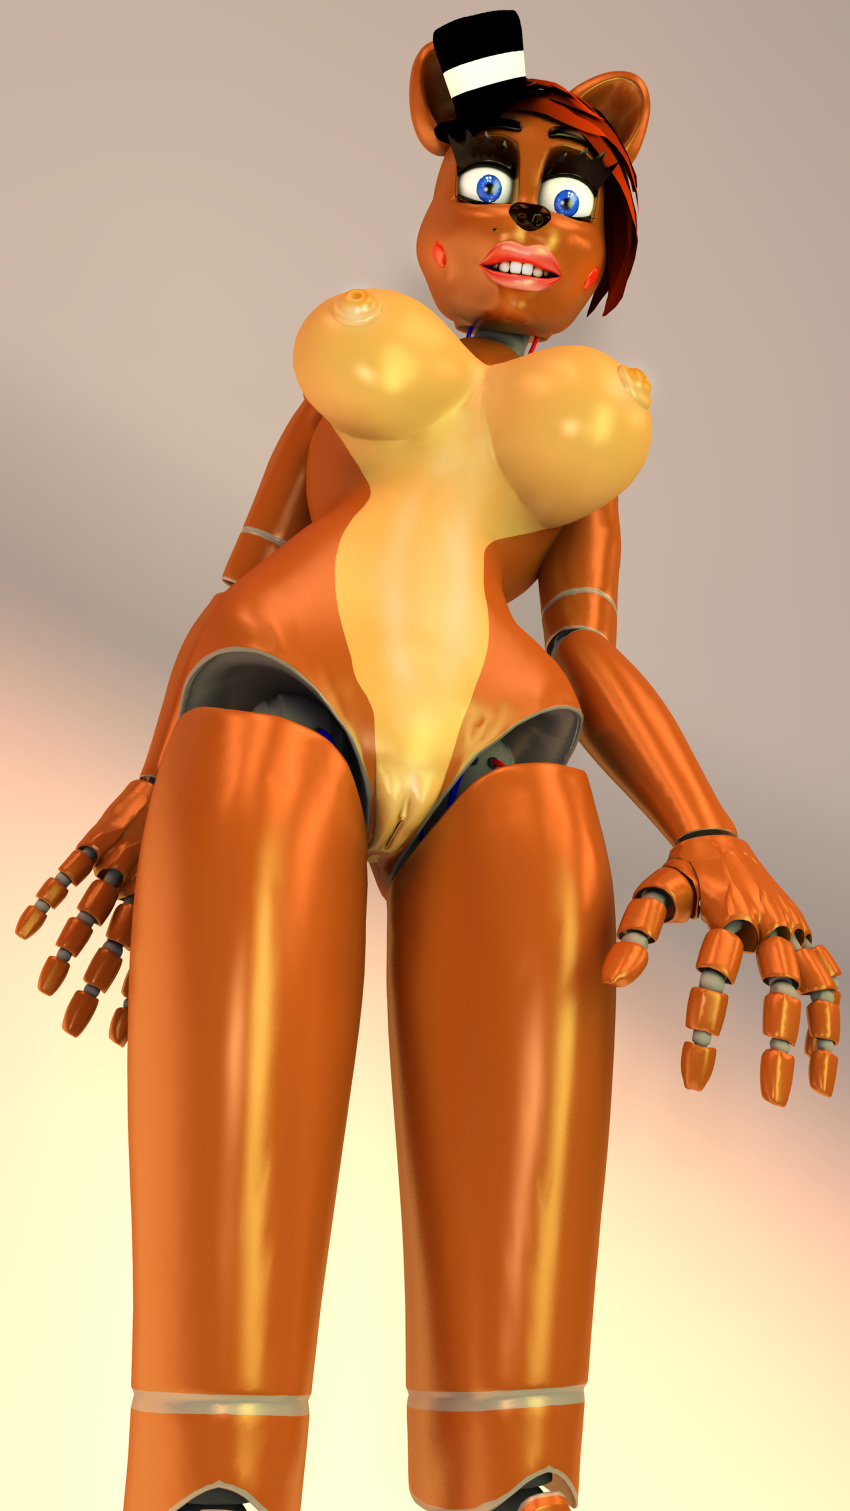 freddys five at nights pictures Eva metal gear solid 5